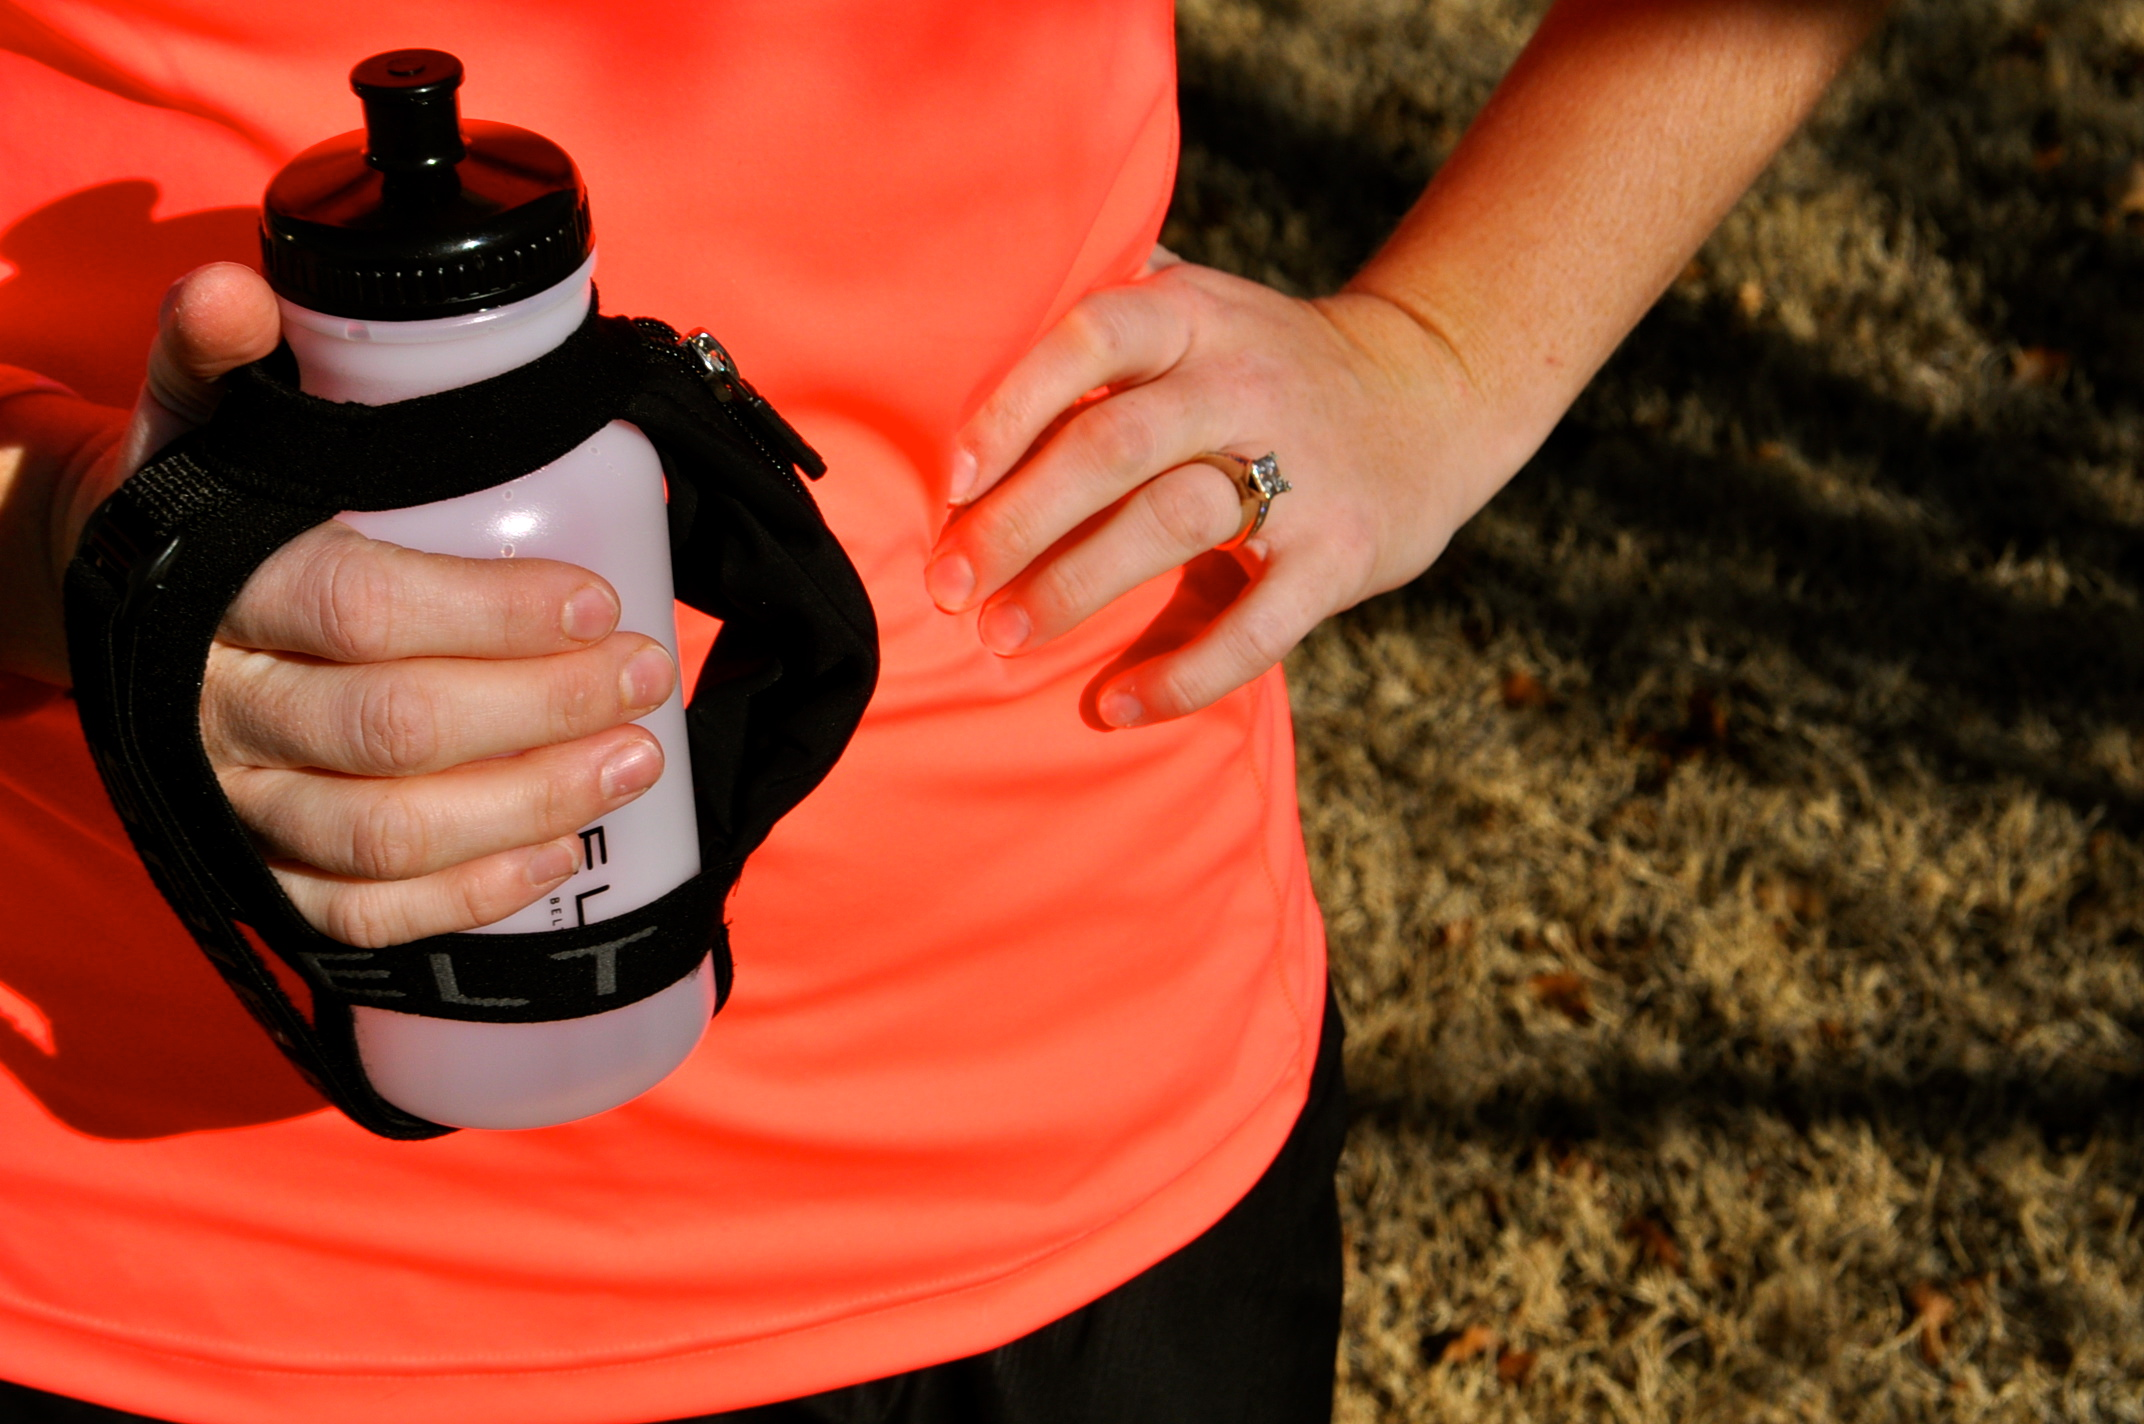 It's Summer, and the SPI Belt Water Bottle is keeping me fueled during these hot runs! via @brittanysuell